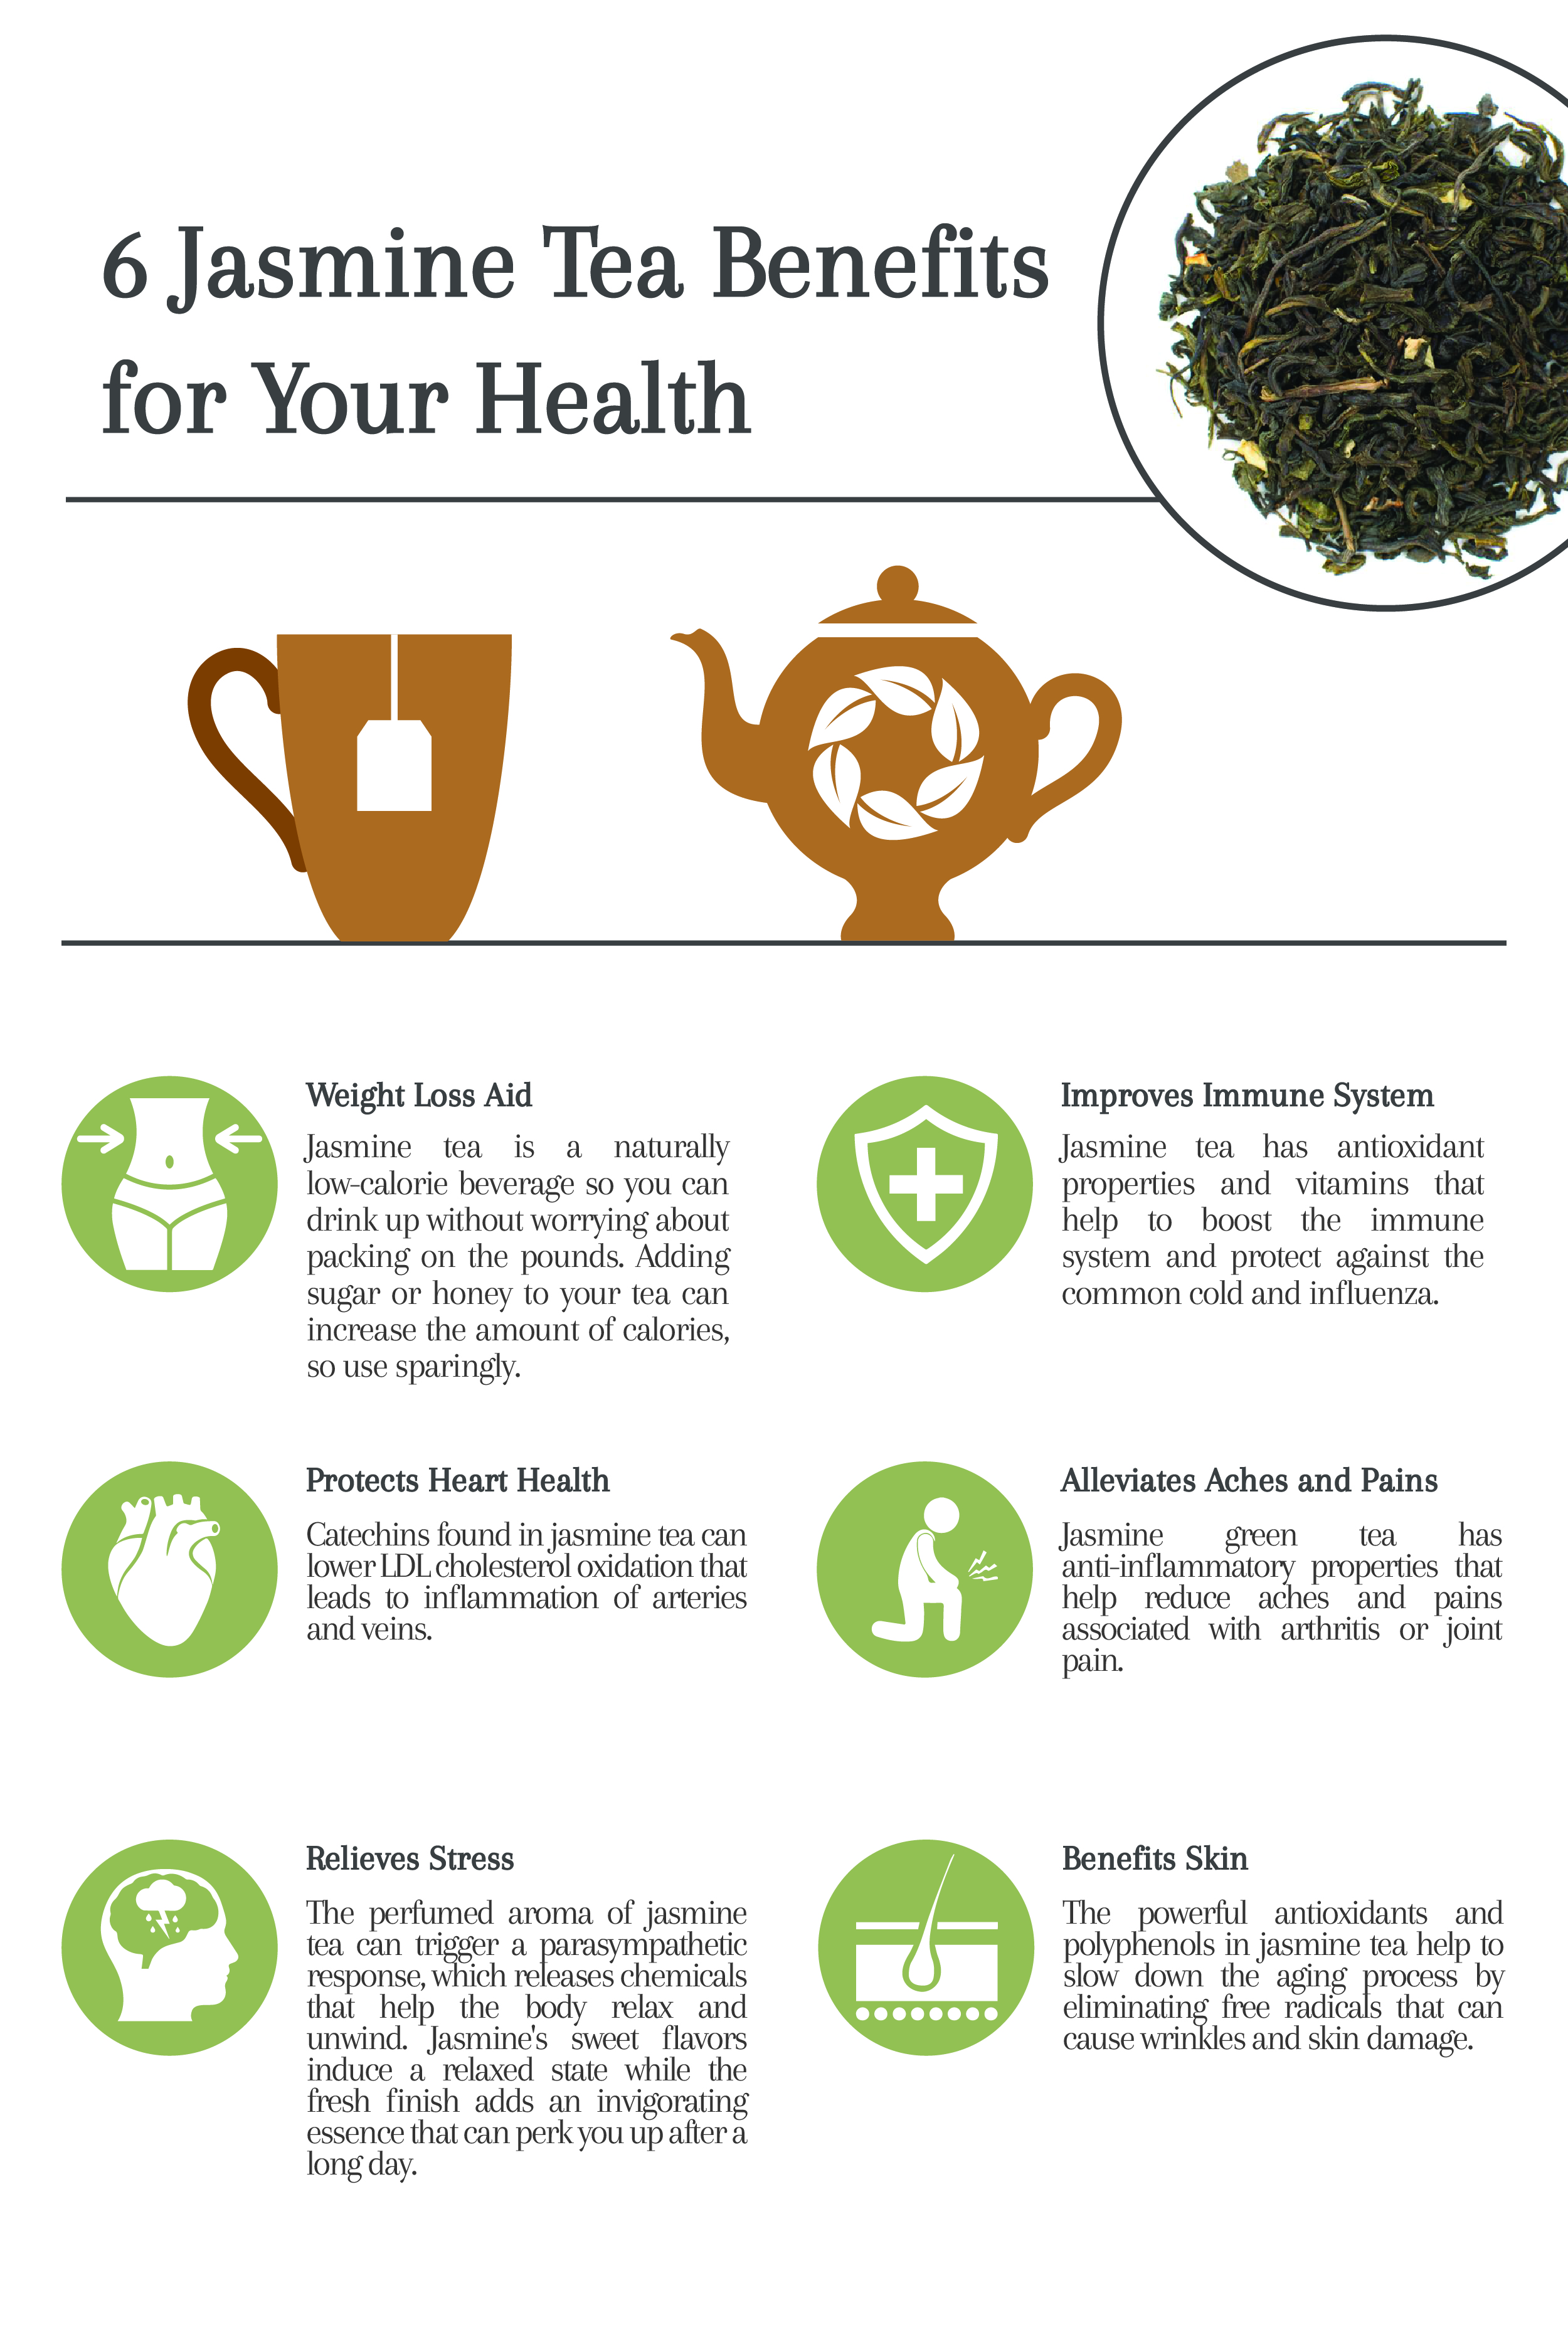 9 jasmine tea benefits for your health - cup & leaf